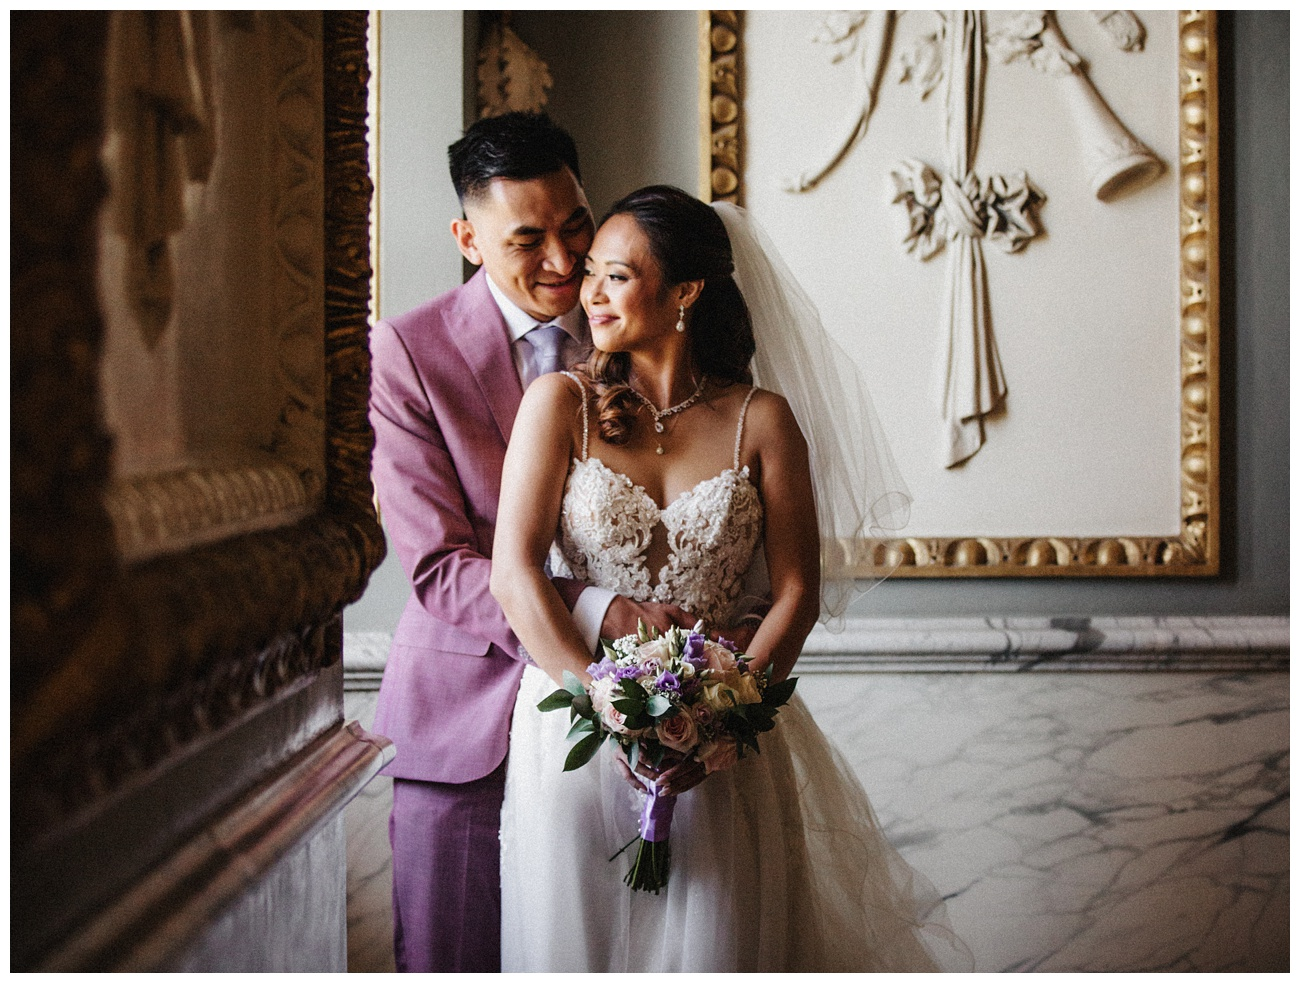 The smiling groom holds the happy bride by a window at Moor Park Mansion